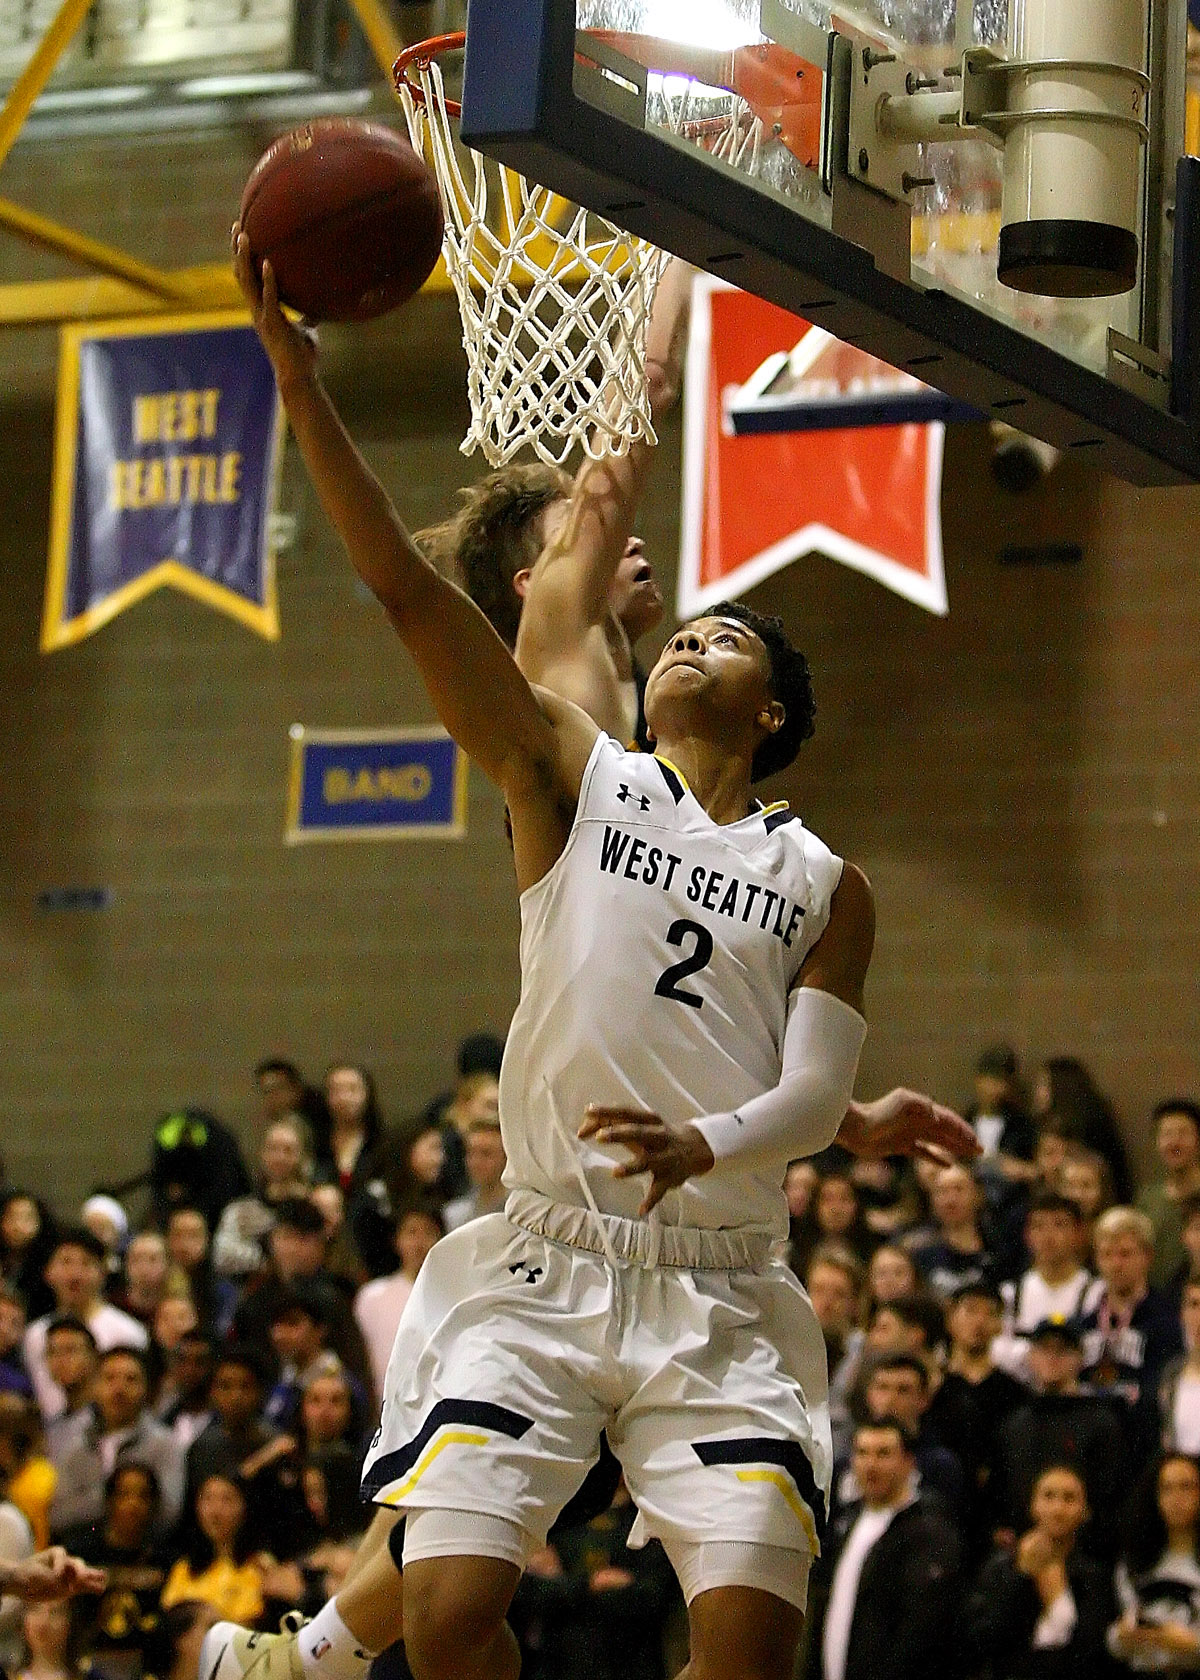 Elijah Nnanabu of West Seattle makes a reverse layup against Lakeside's Max Knight.